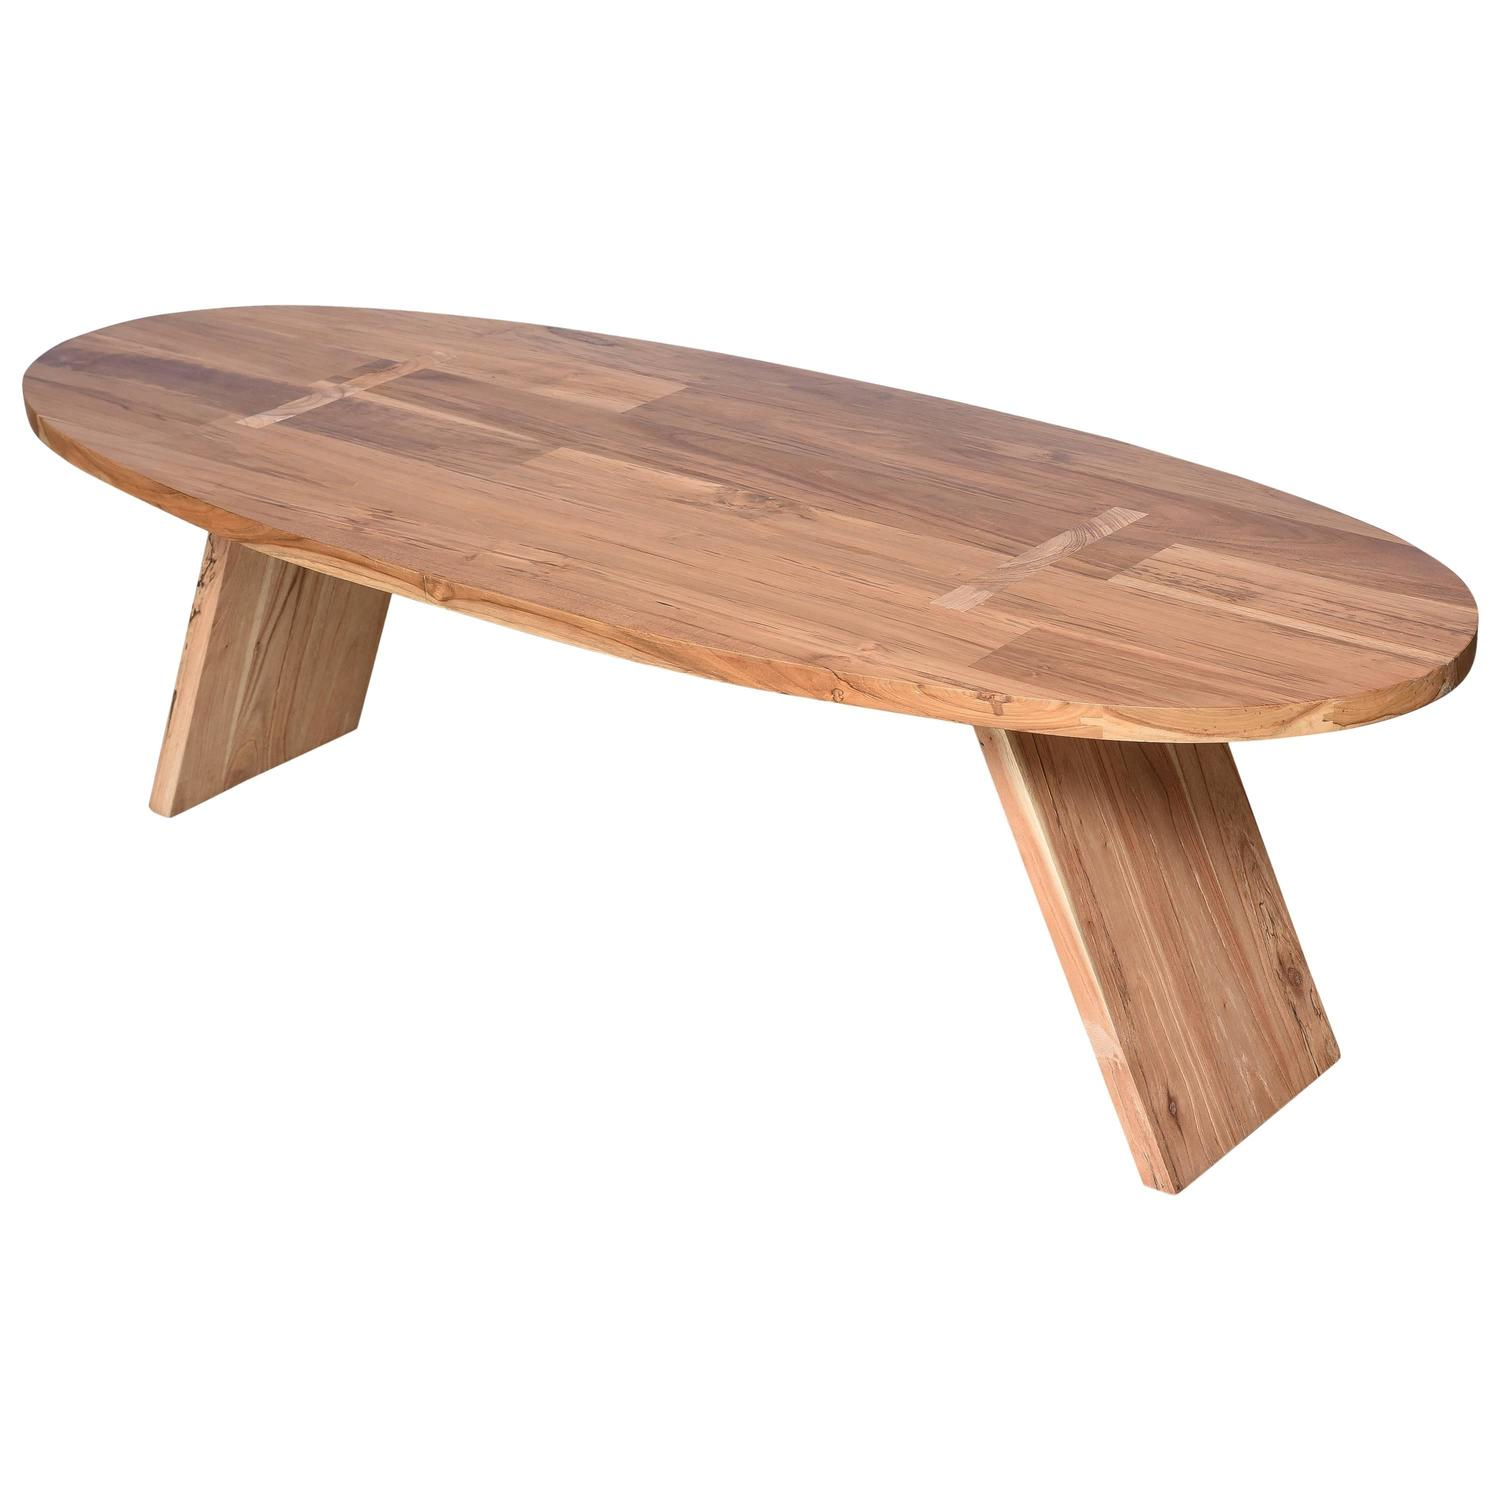 Coffee Table Teak Wood Oval Surfboard Shape Handmade For Sale At 1stdibs